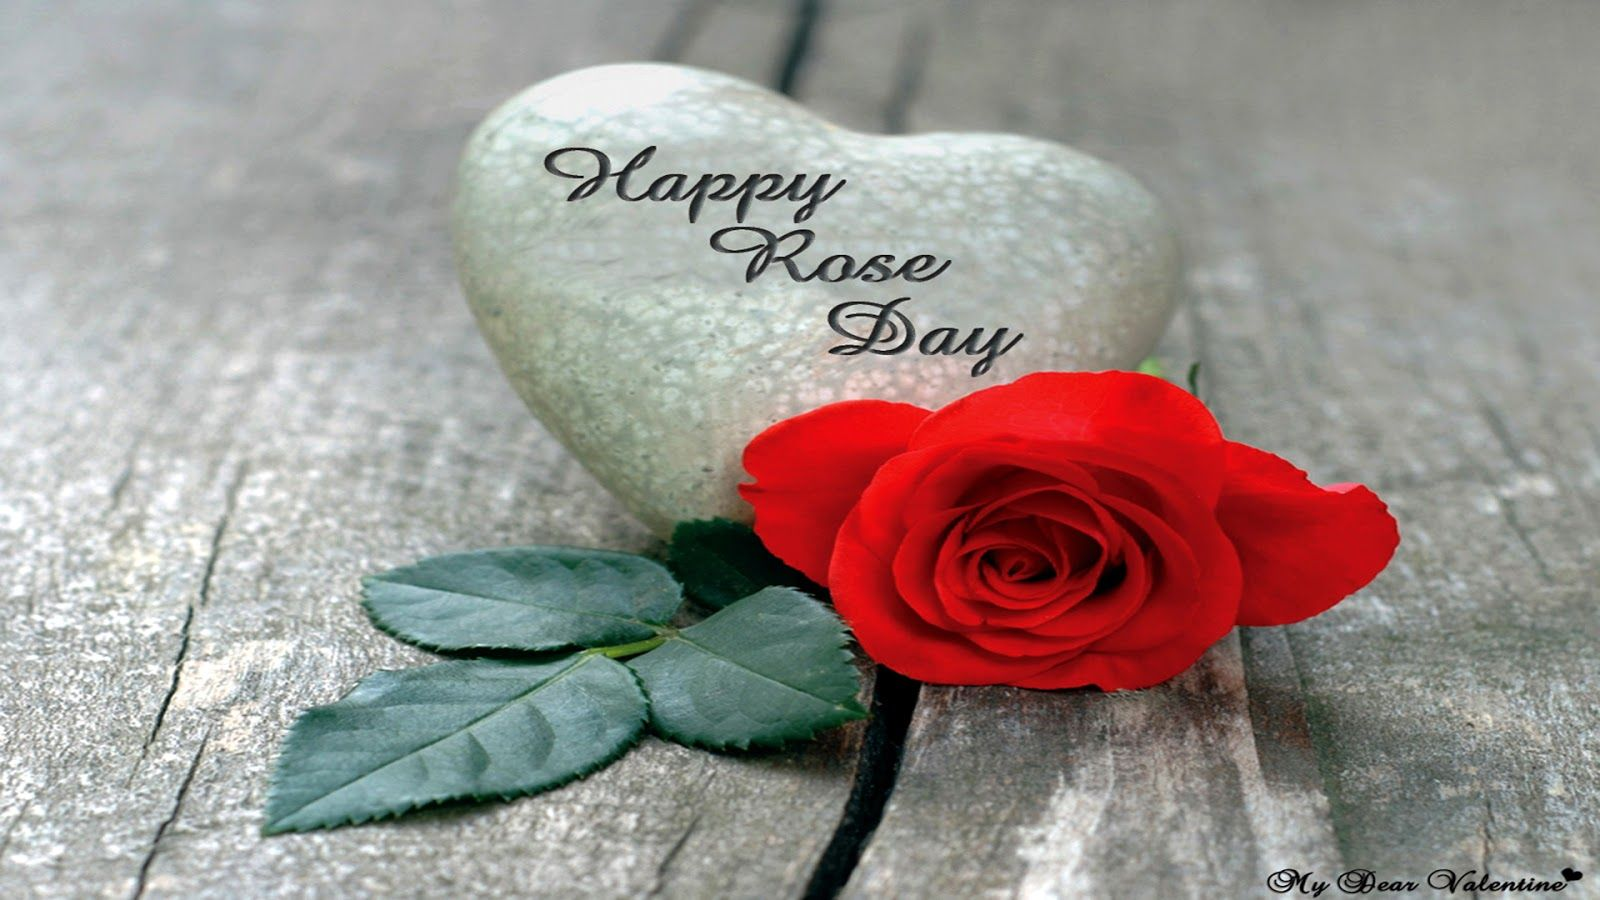 Happy Rose Day Wallpapers Hd Download Free 1080p Happy Rose Day Wallpaper Rose Day Shayari Rose Day Wallpaper